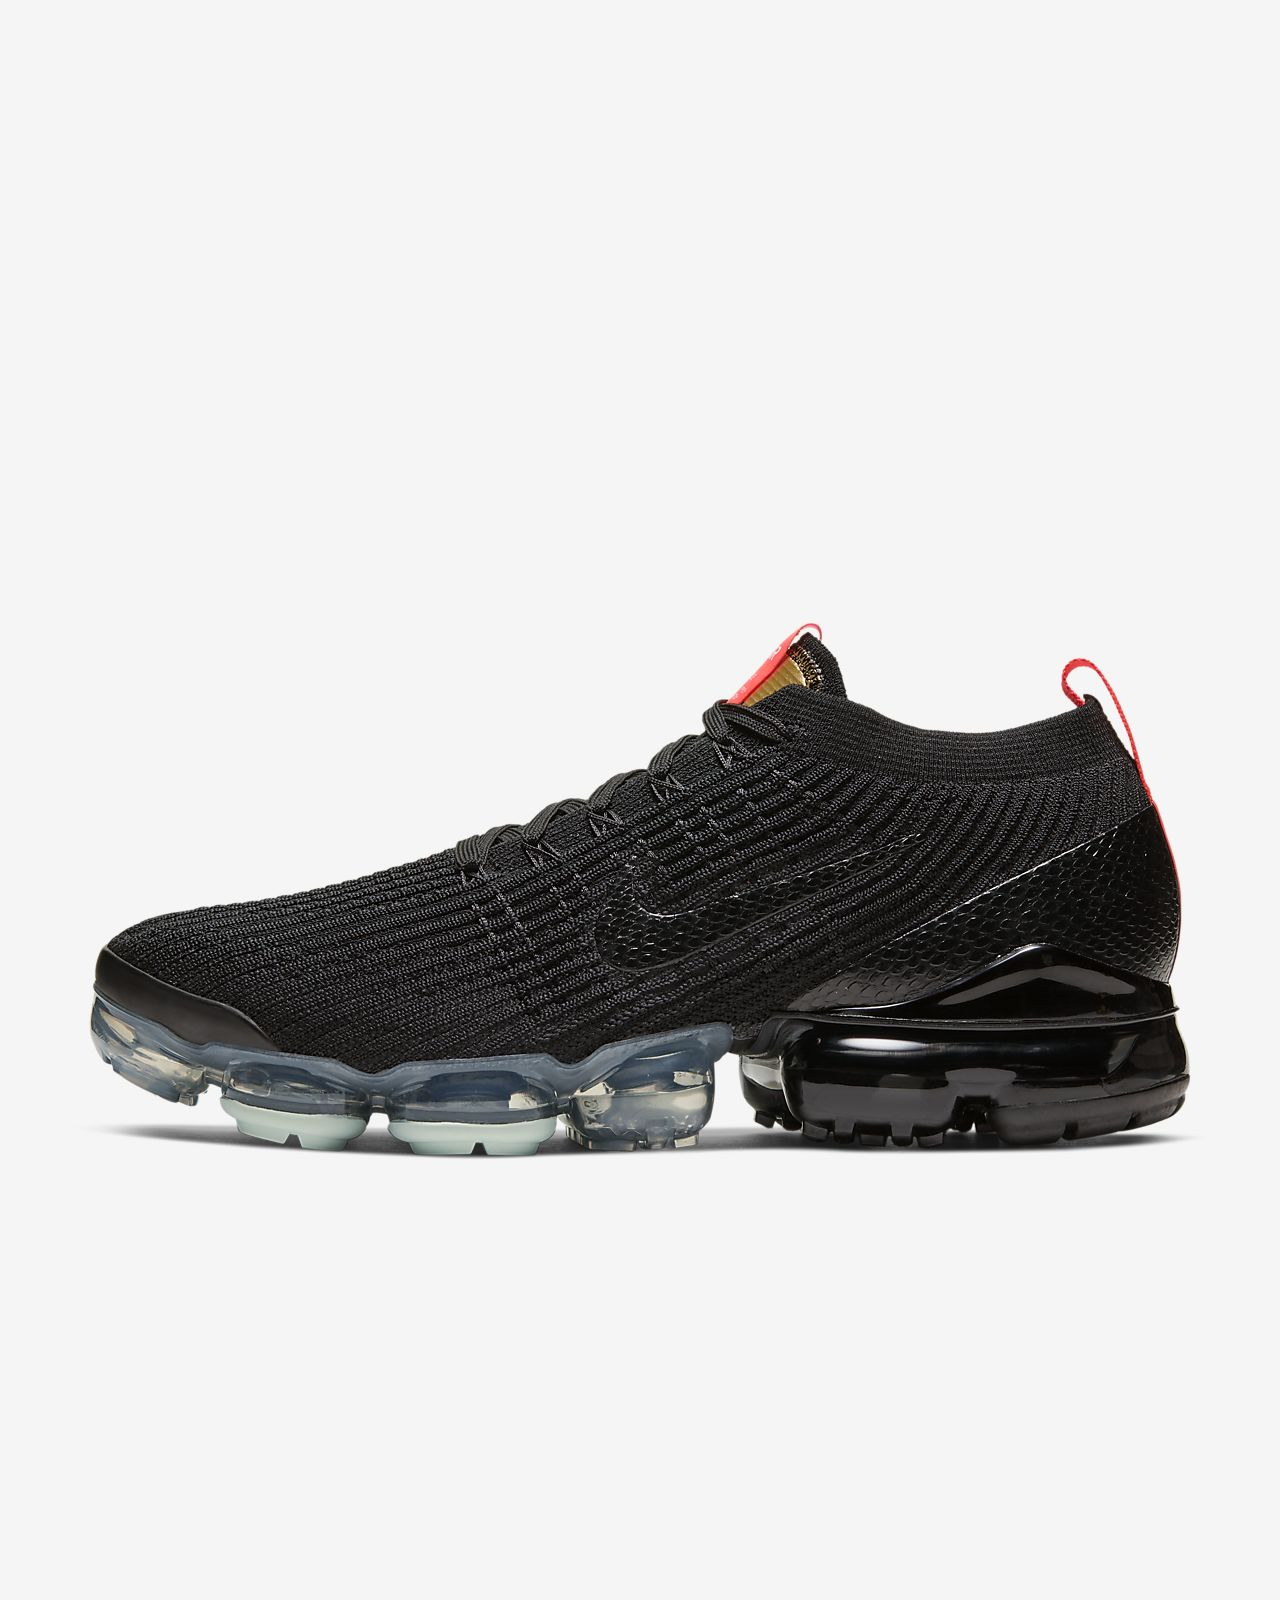 nike vapormax svart and hvit